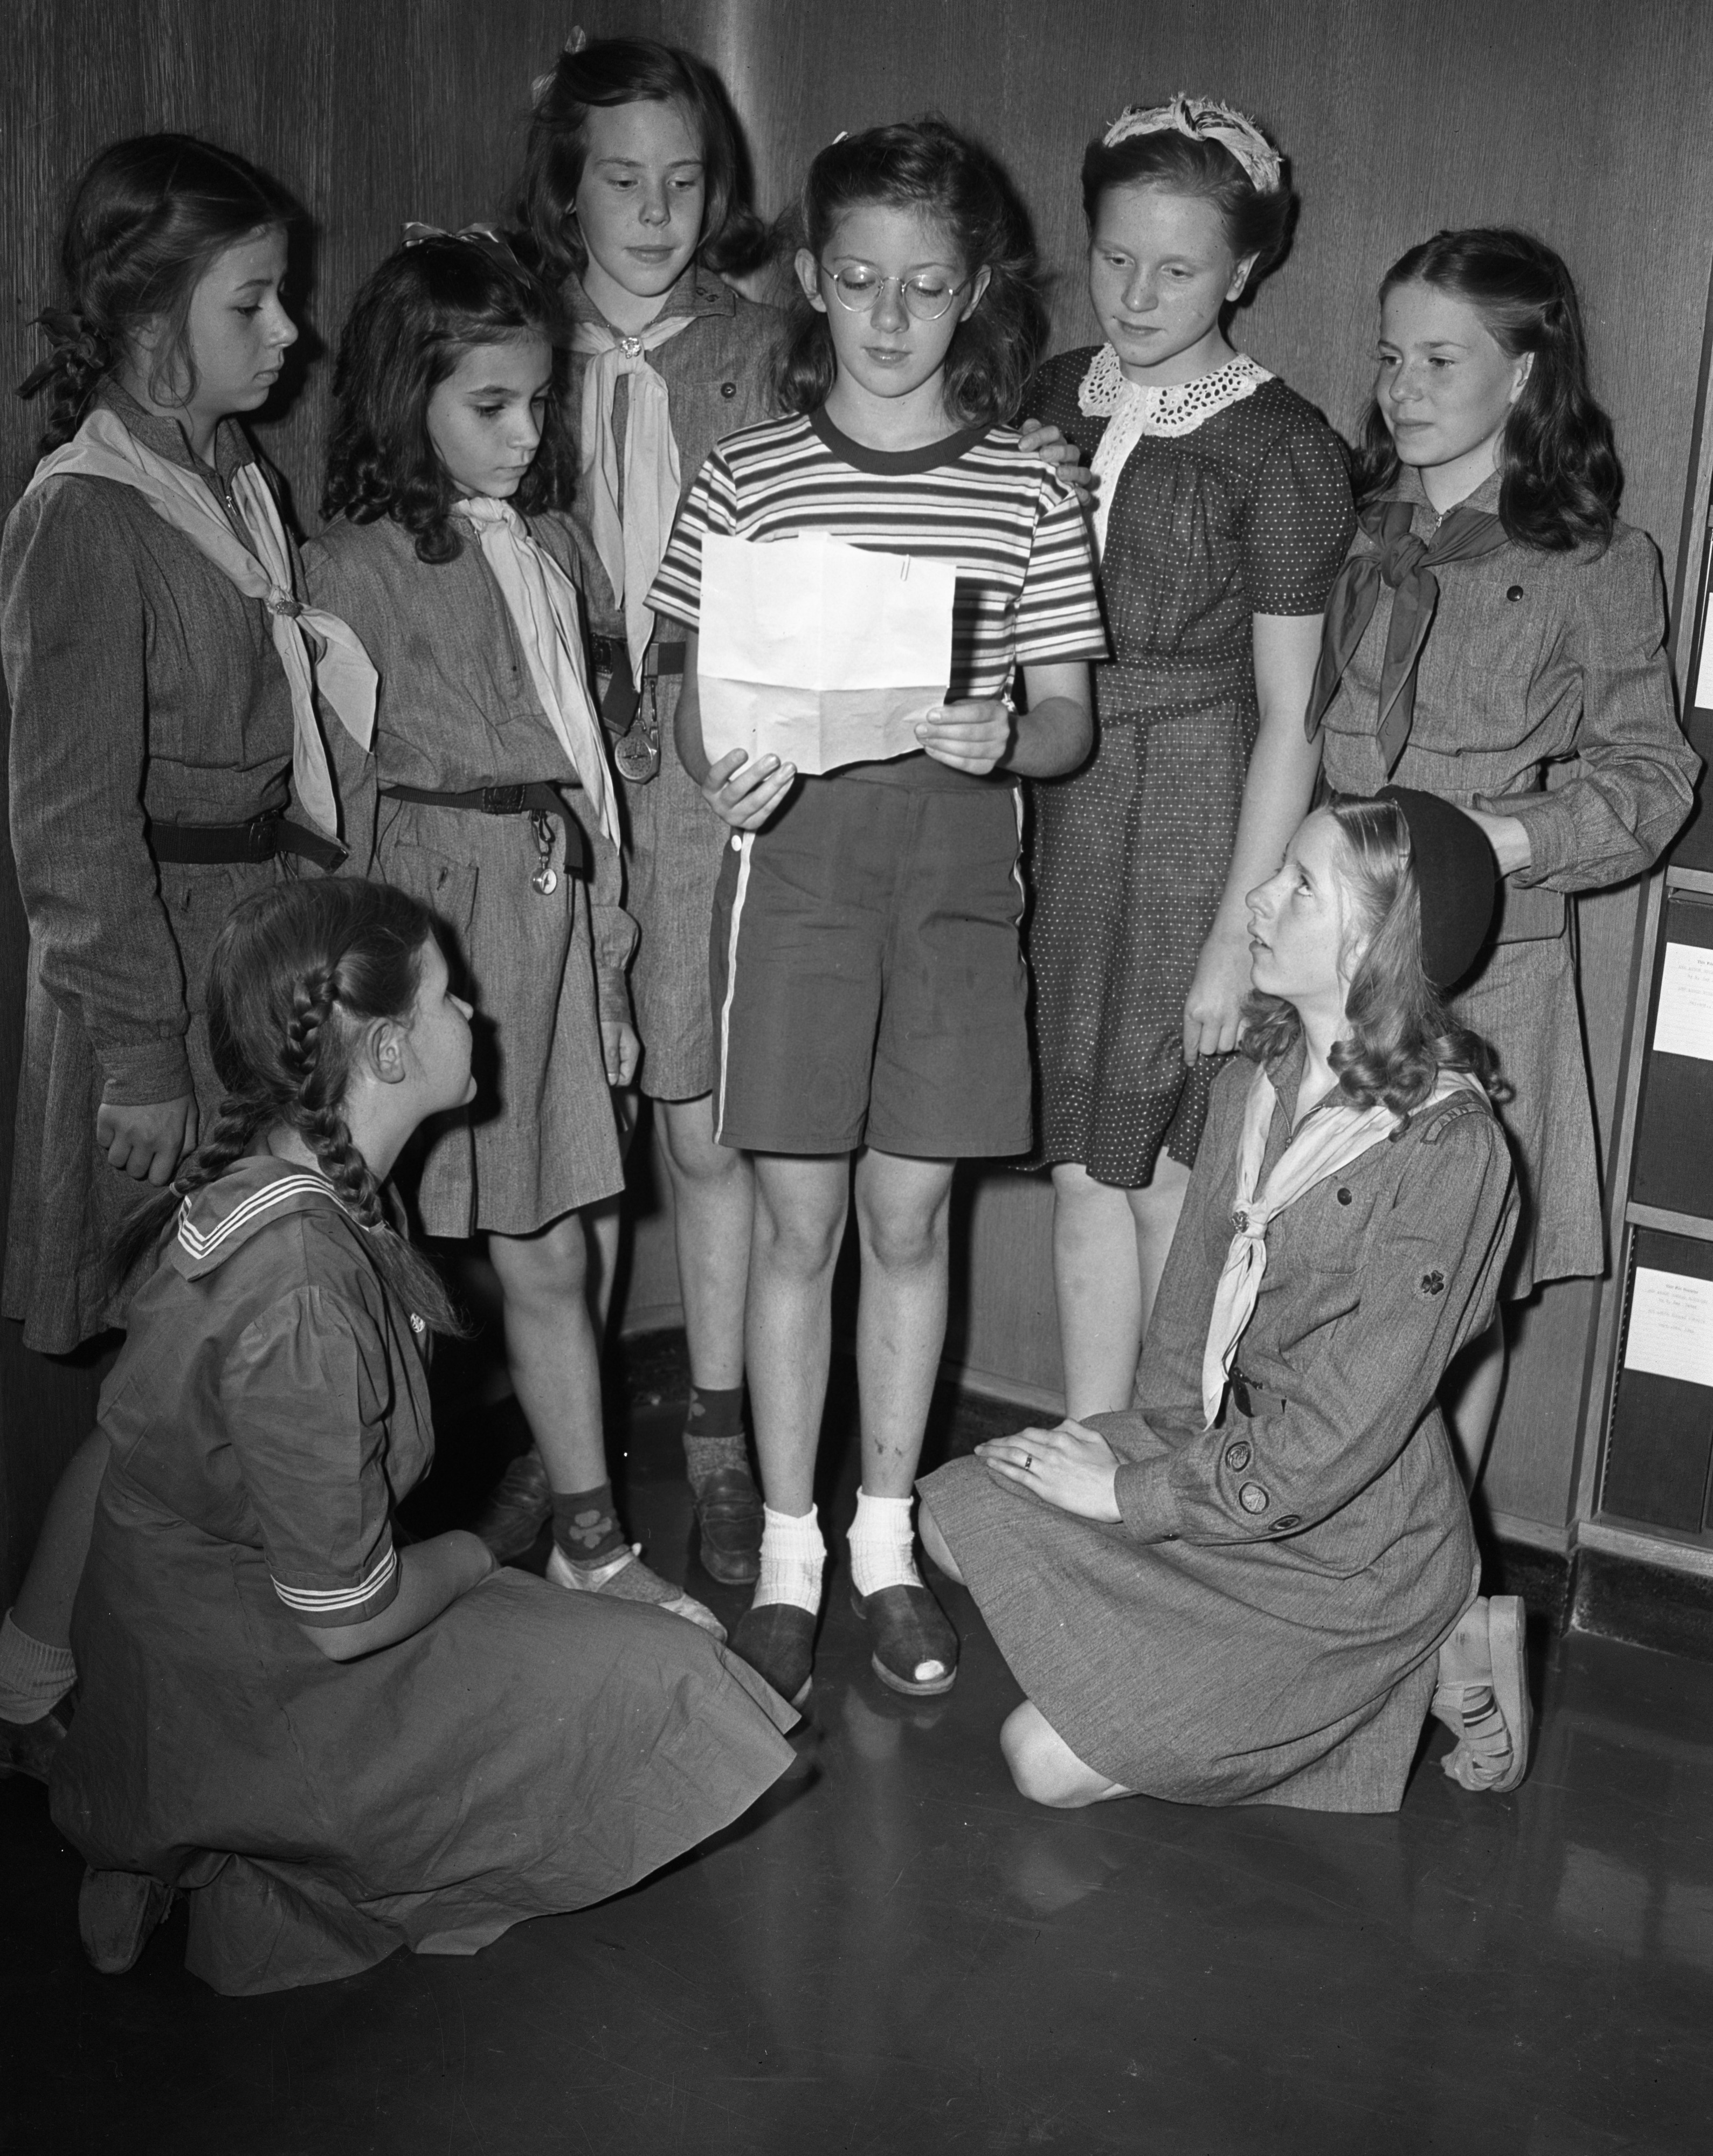 Girl Scouts Buy War Bond, July 1942 image